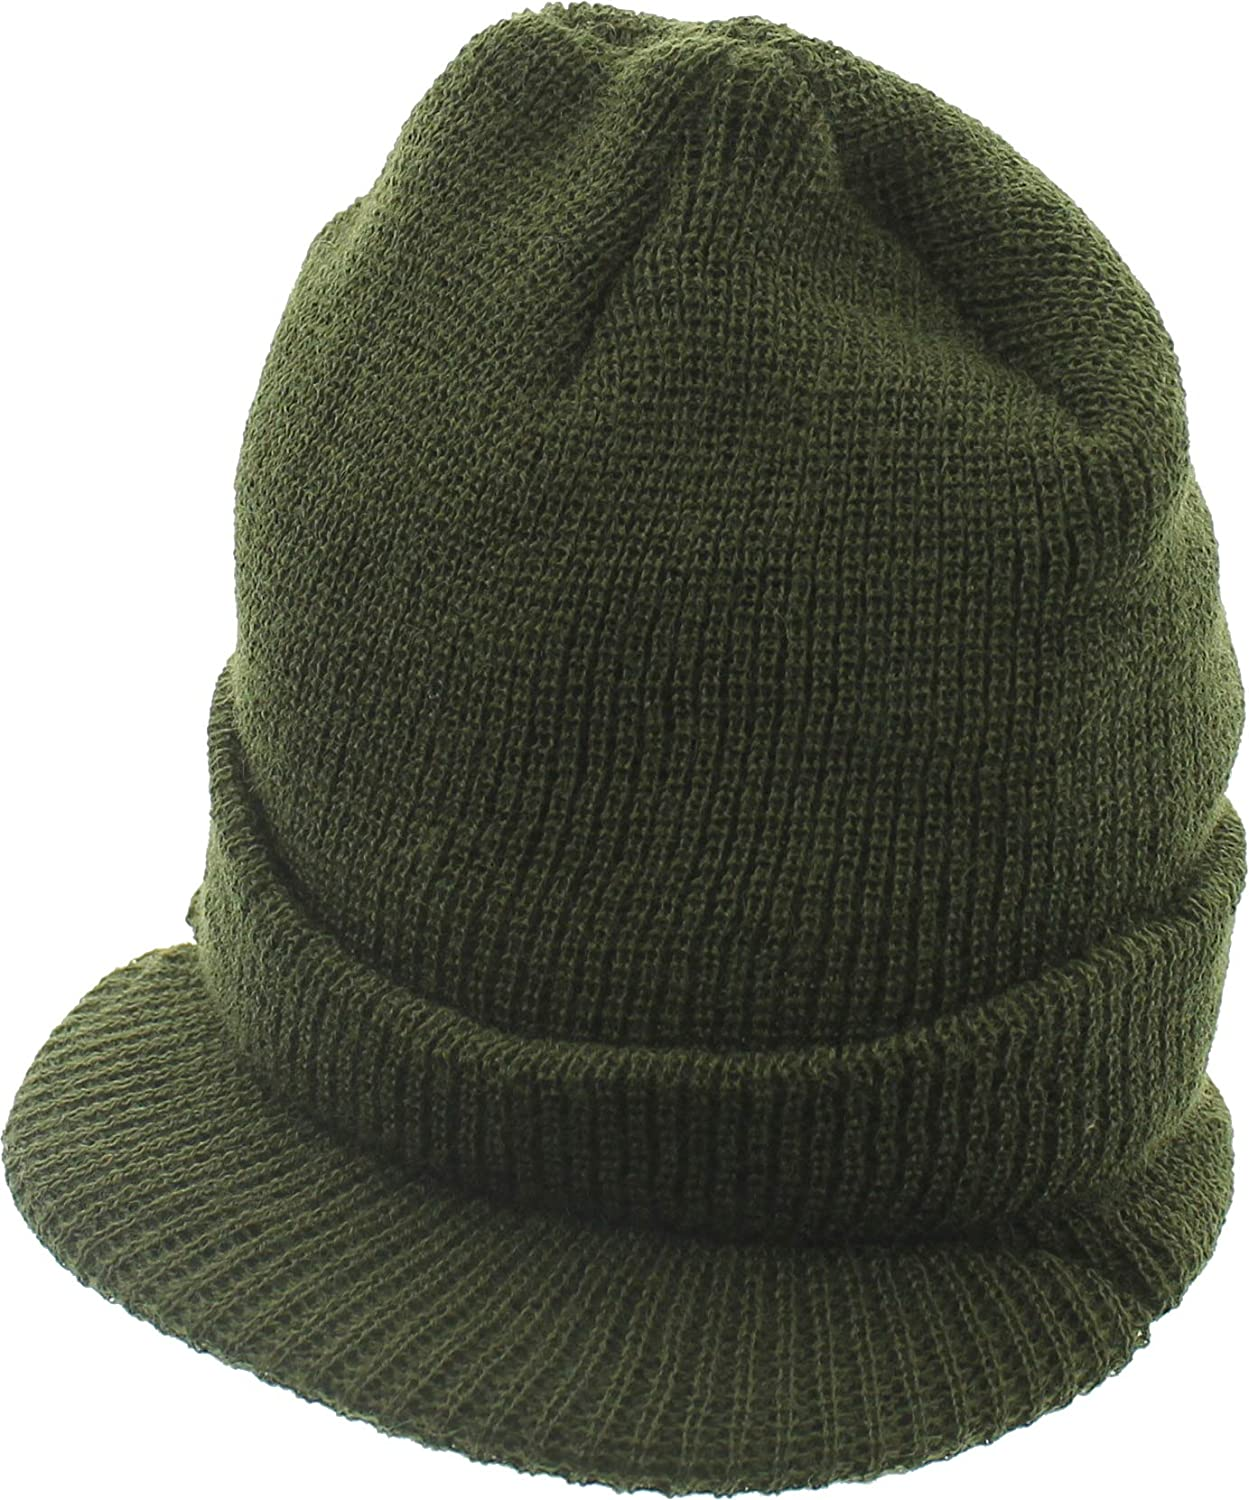 ARMYU Military Genuine GI Wool Knit Jeep Hat, USN Cold Weather Winter Visor Cap US Made